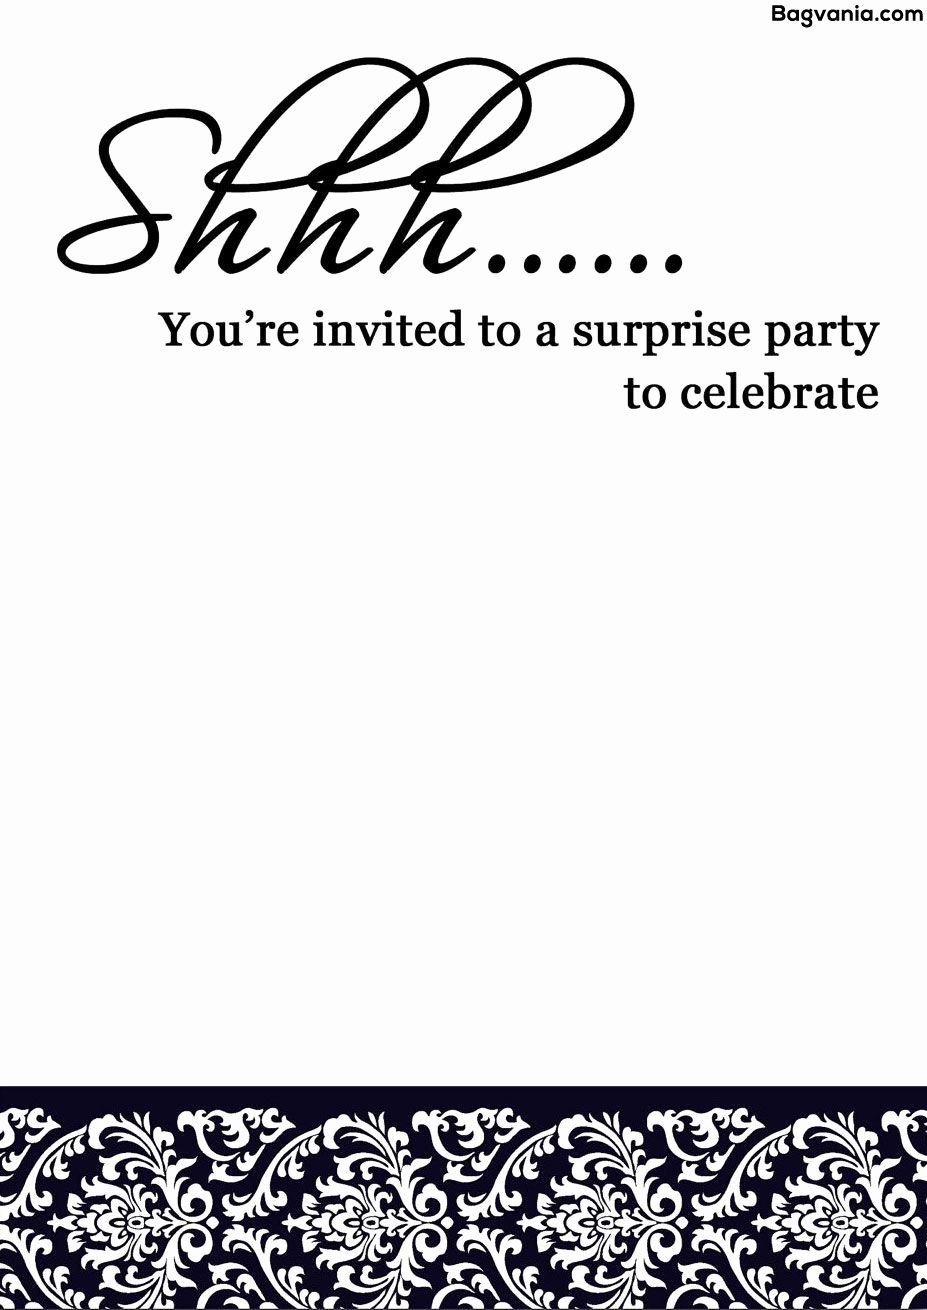 Surprise Party Invitation Template Awesome Free Printable Surprise Birthday Invitations – Bagvania Free Printable Invitation Template